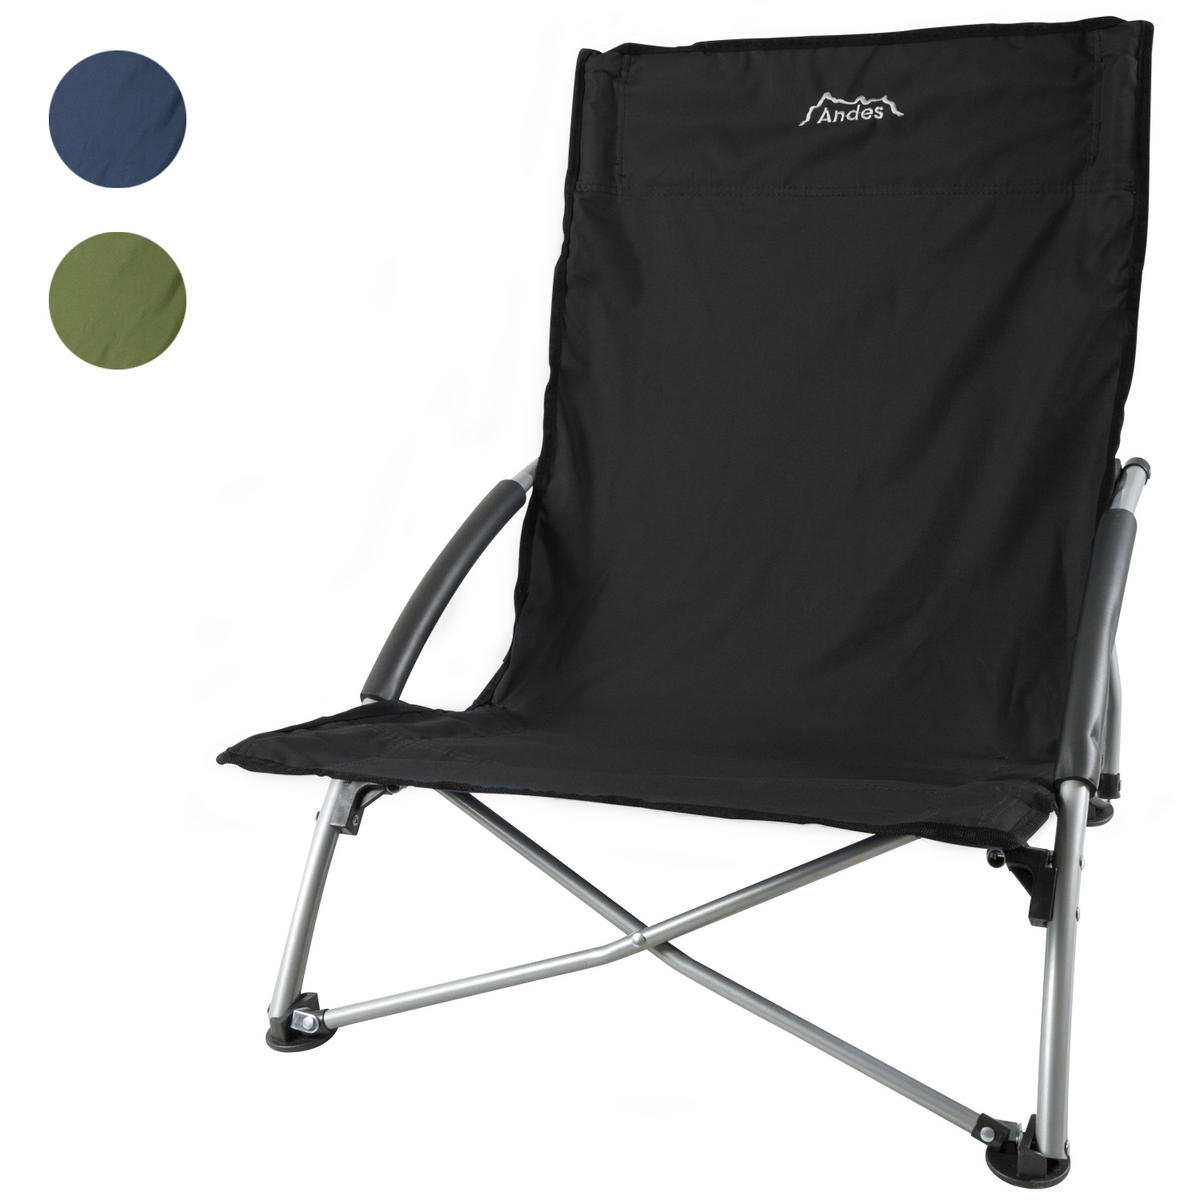 Andes Camping Low Chair